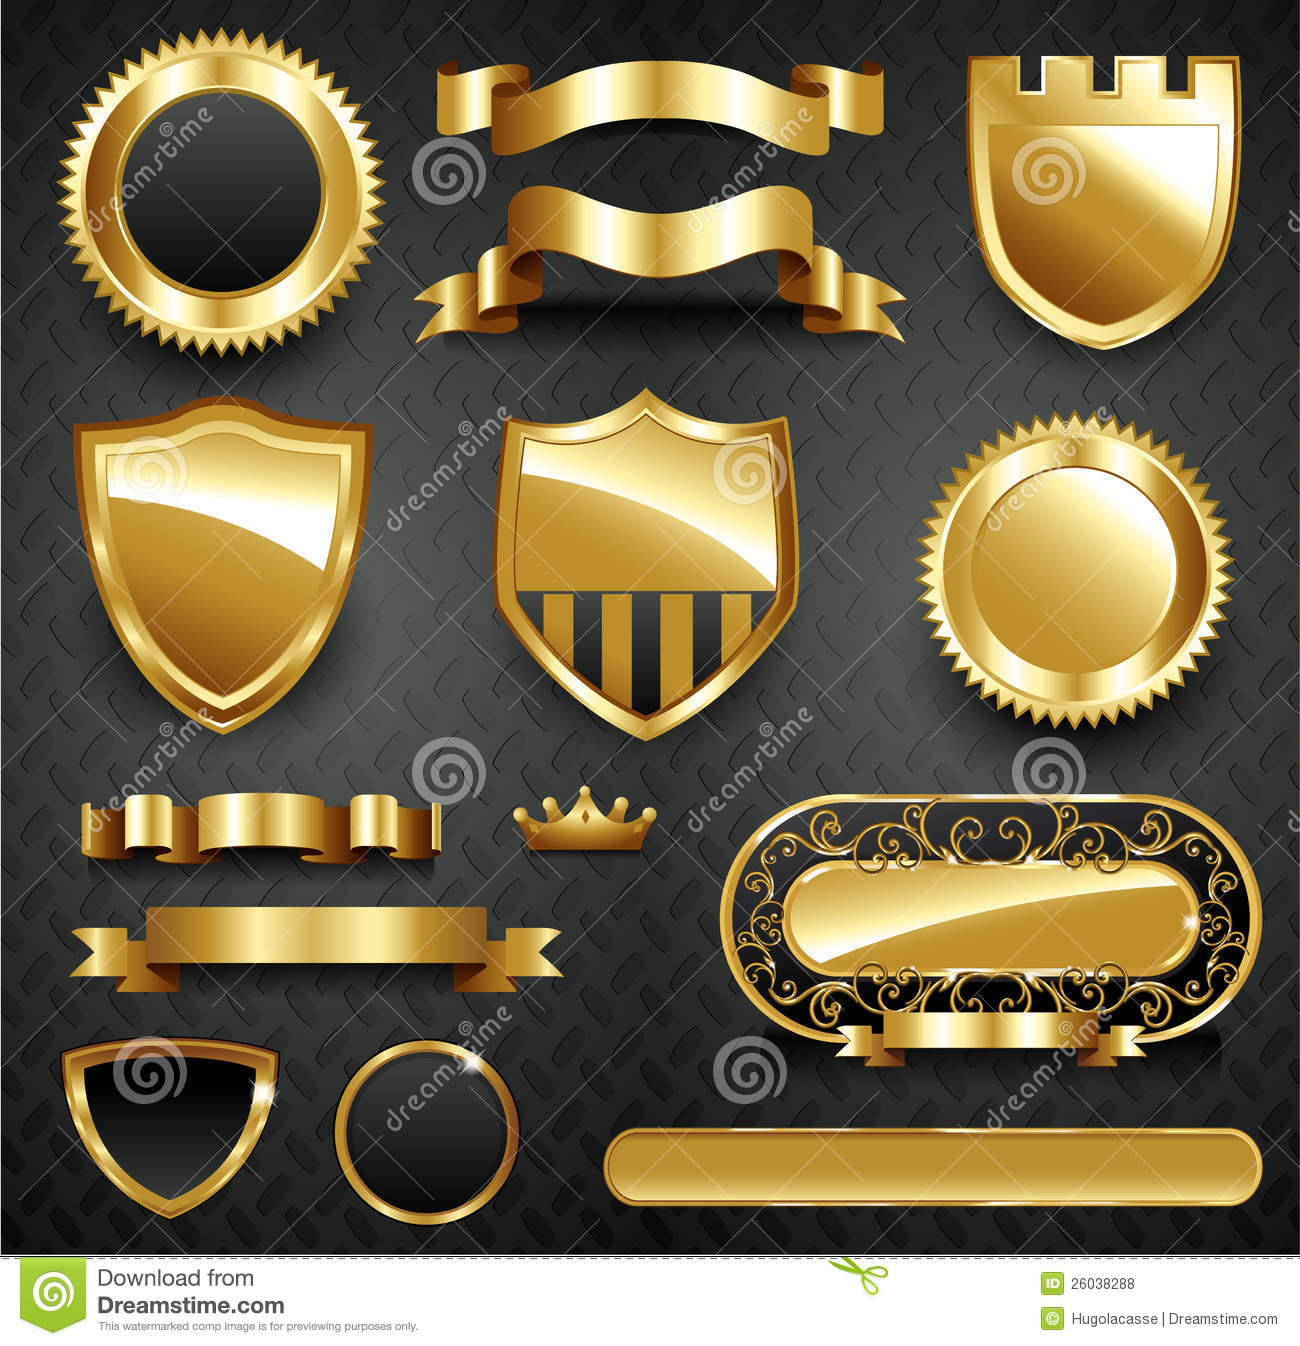 ... Gold Frame Collection Royalty Free Stock Photos - Image: 26038288: https://www.dreamstime.com/royalty-free-stock-photos-decorative...